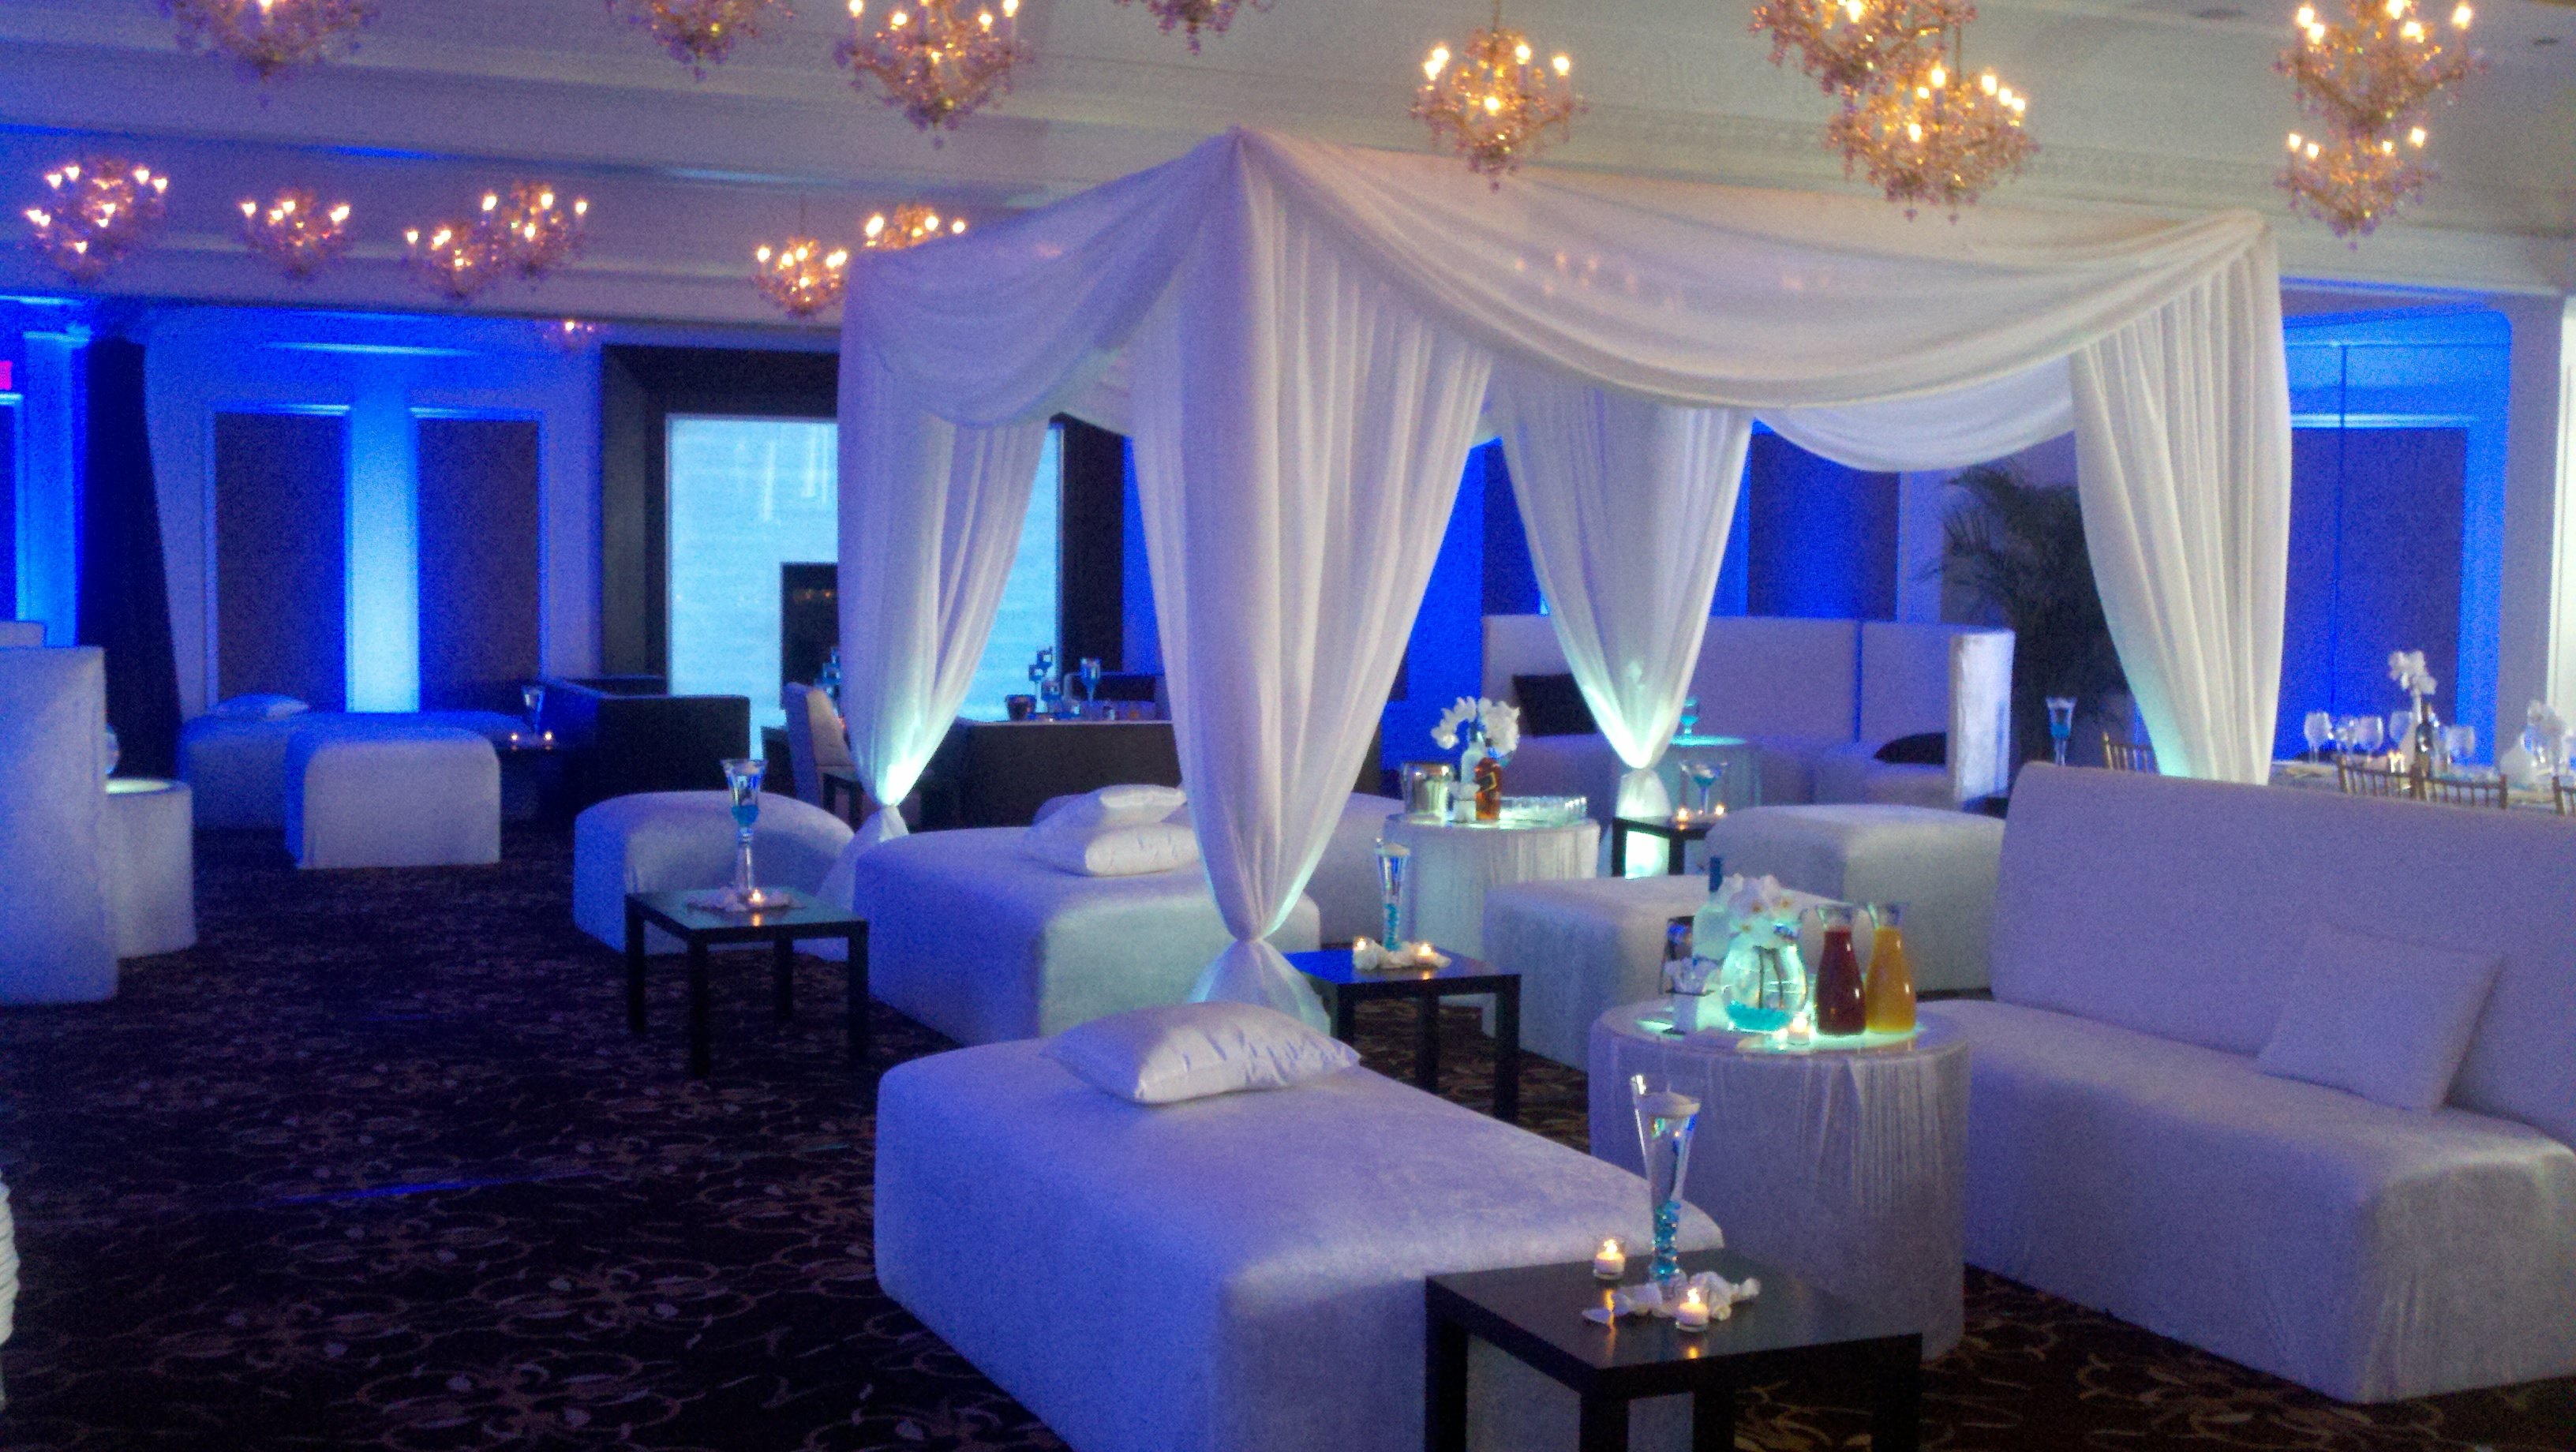 Top Nj Djs Provide Lounge Furniture For Weddings Sweet